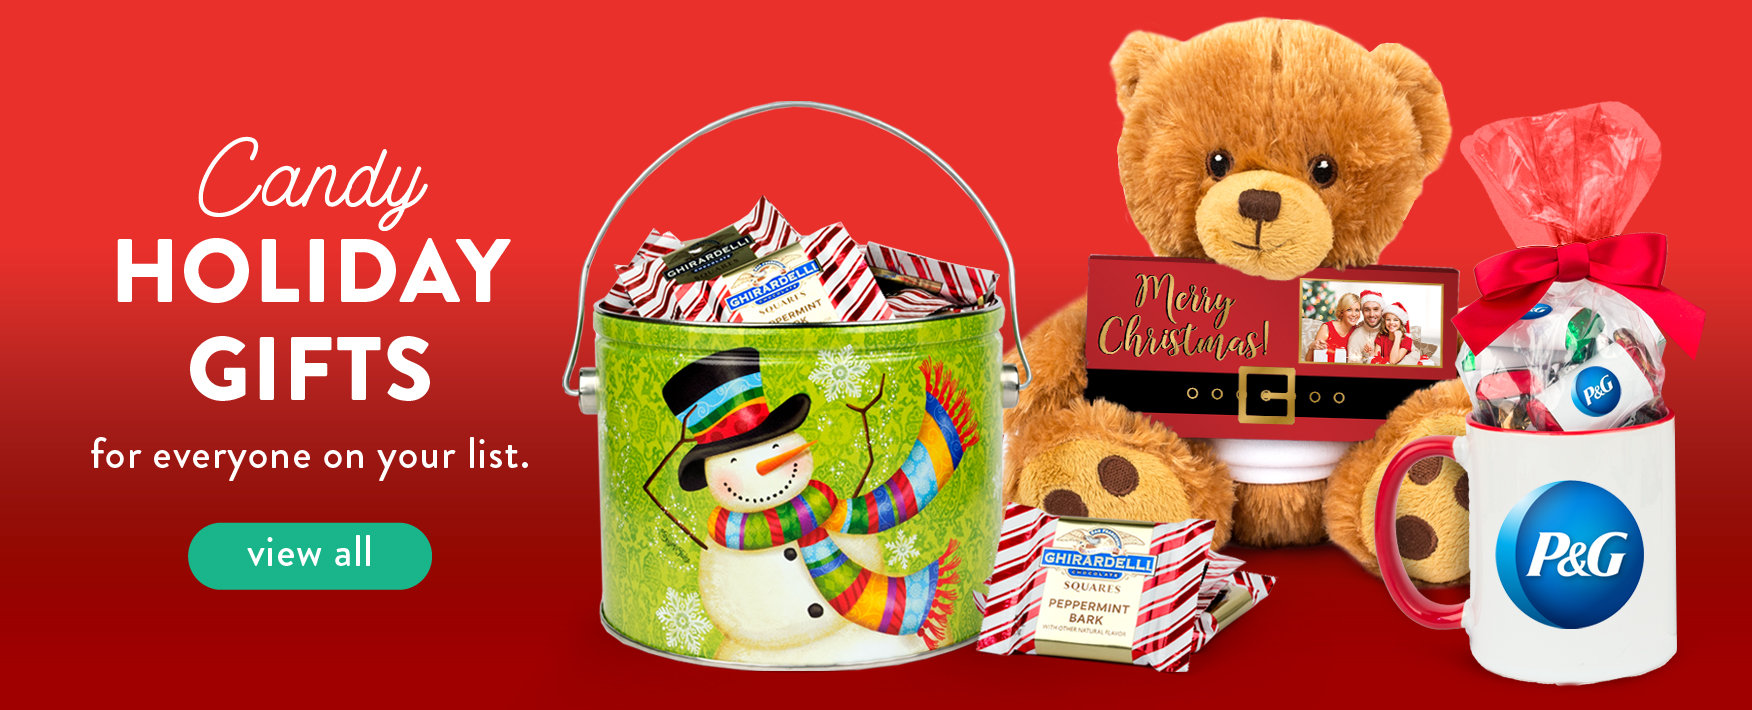 Candy Holiday Gifts